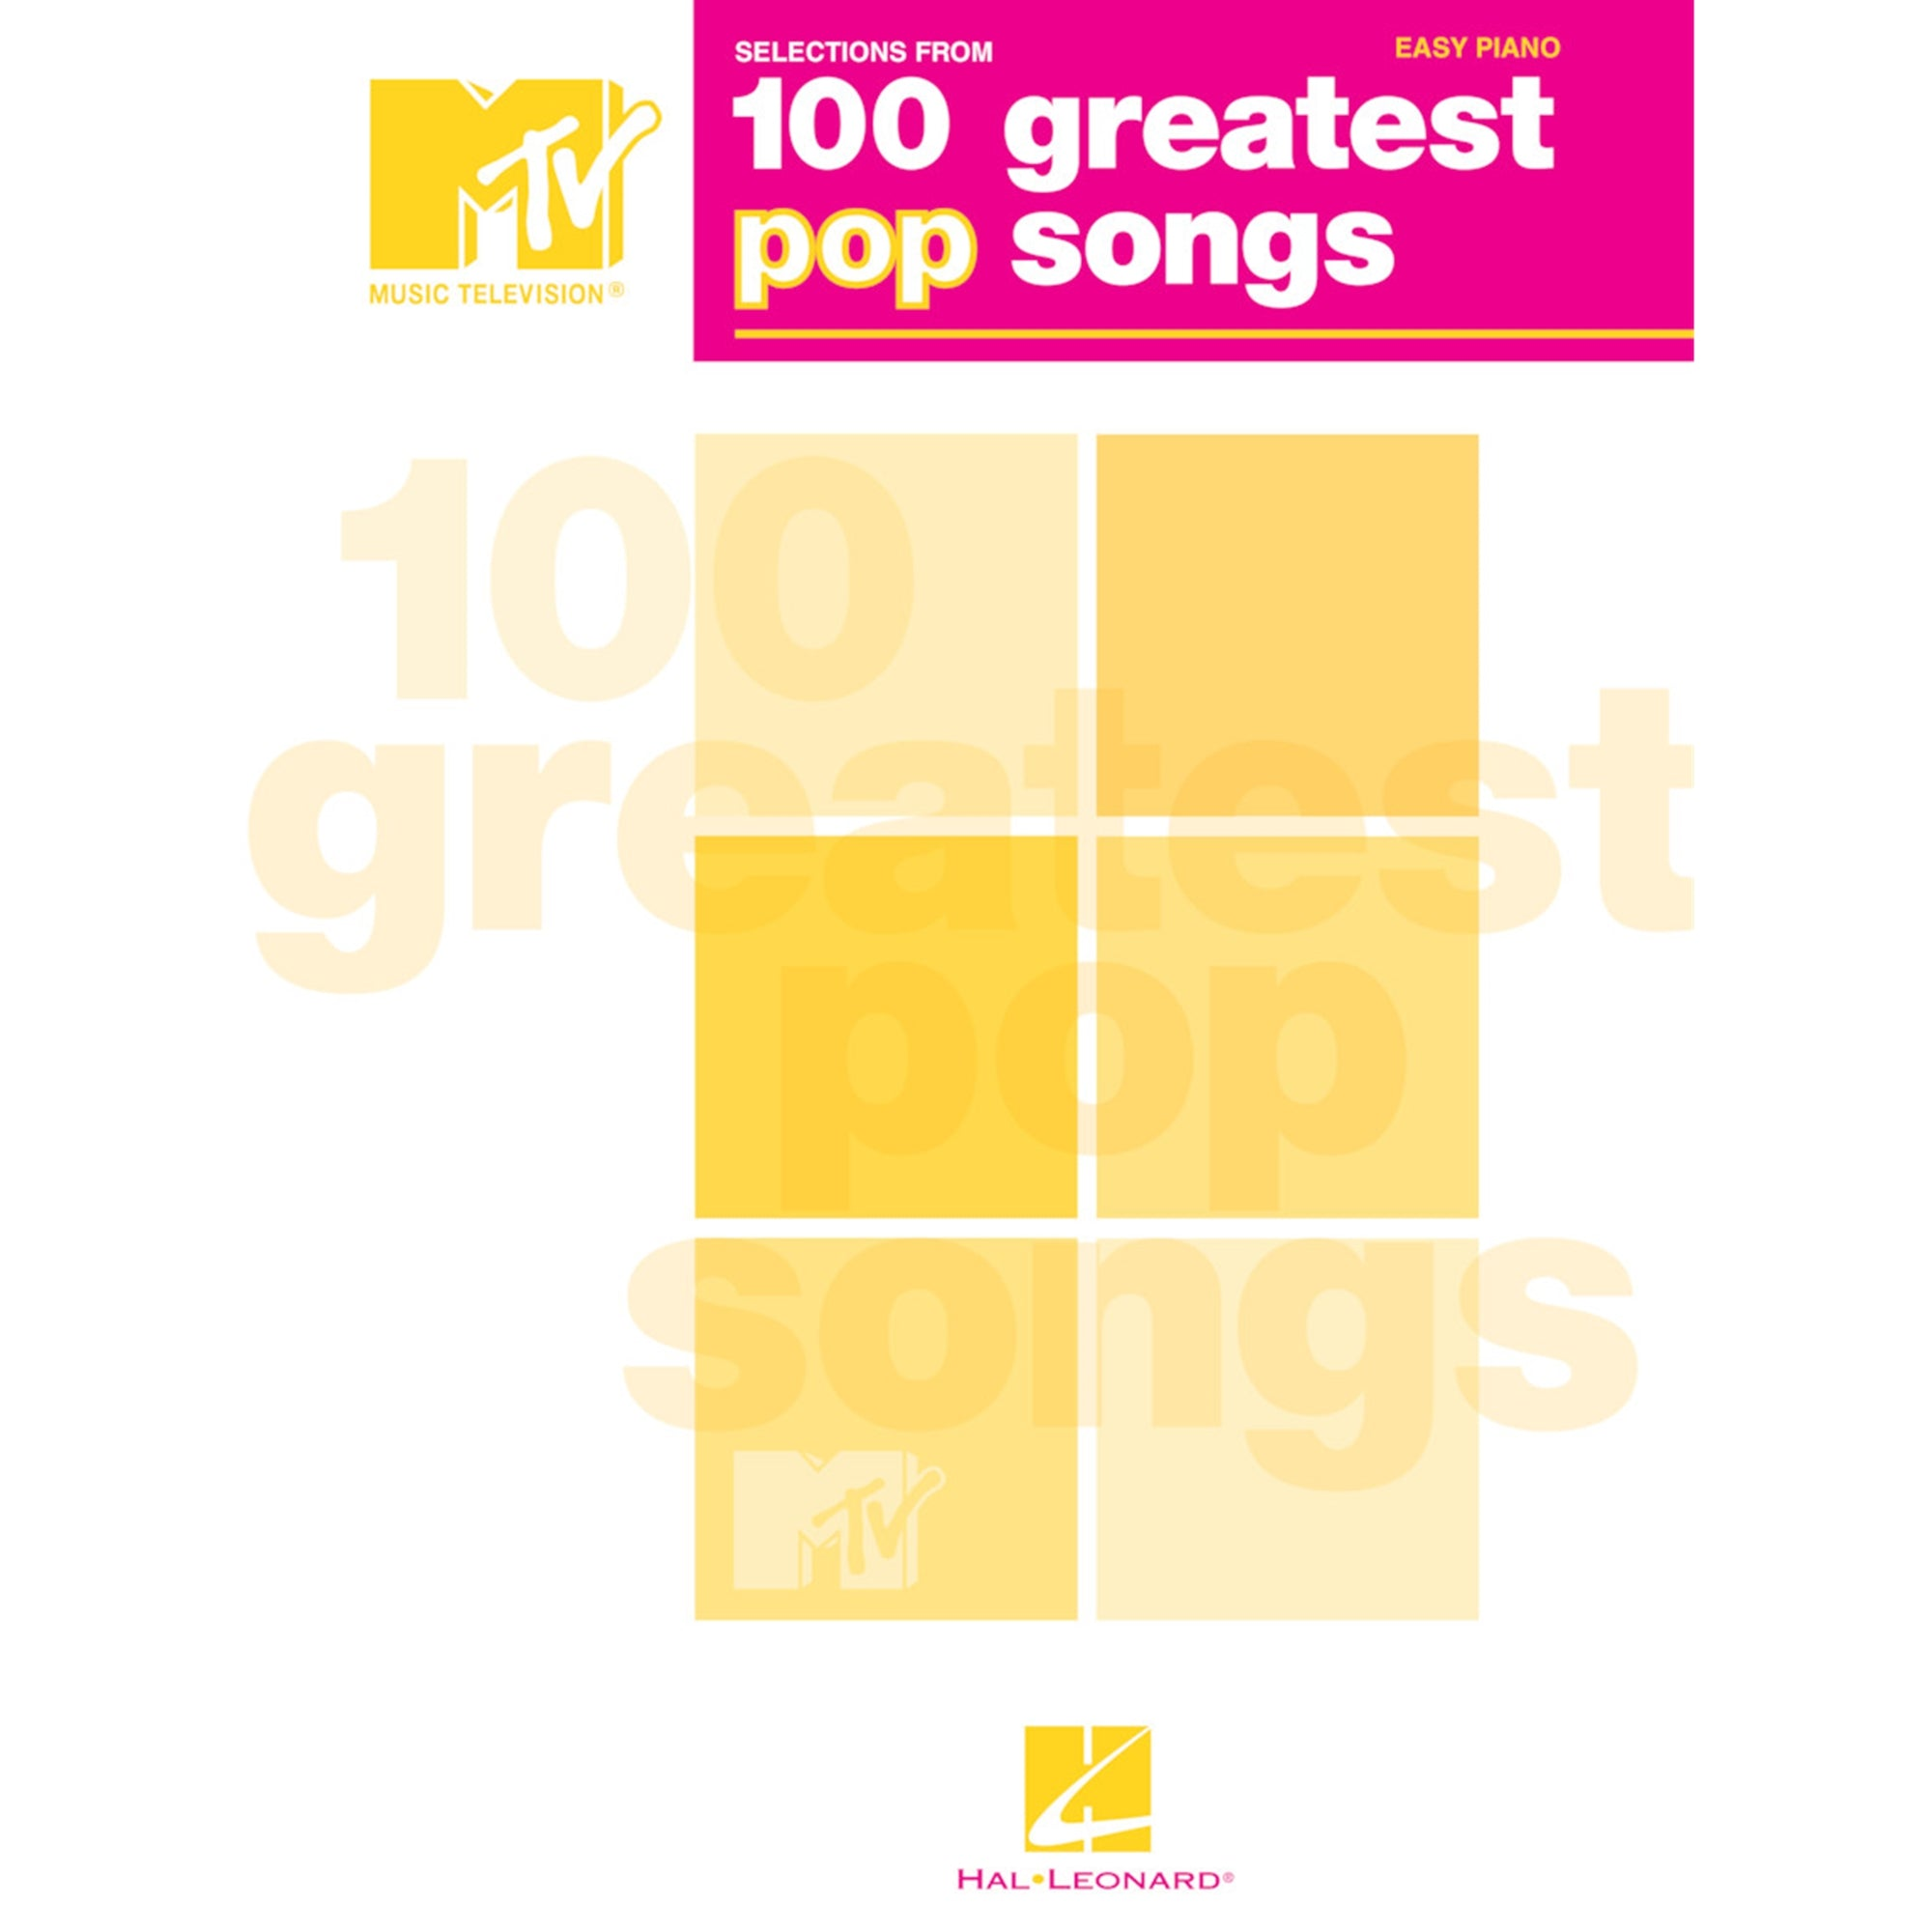 HAL LEONARD 311751 Selections from MTV's 100 Greatest Pop Songs